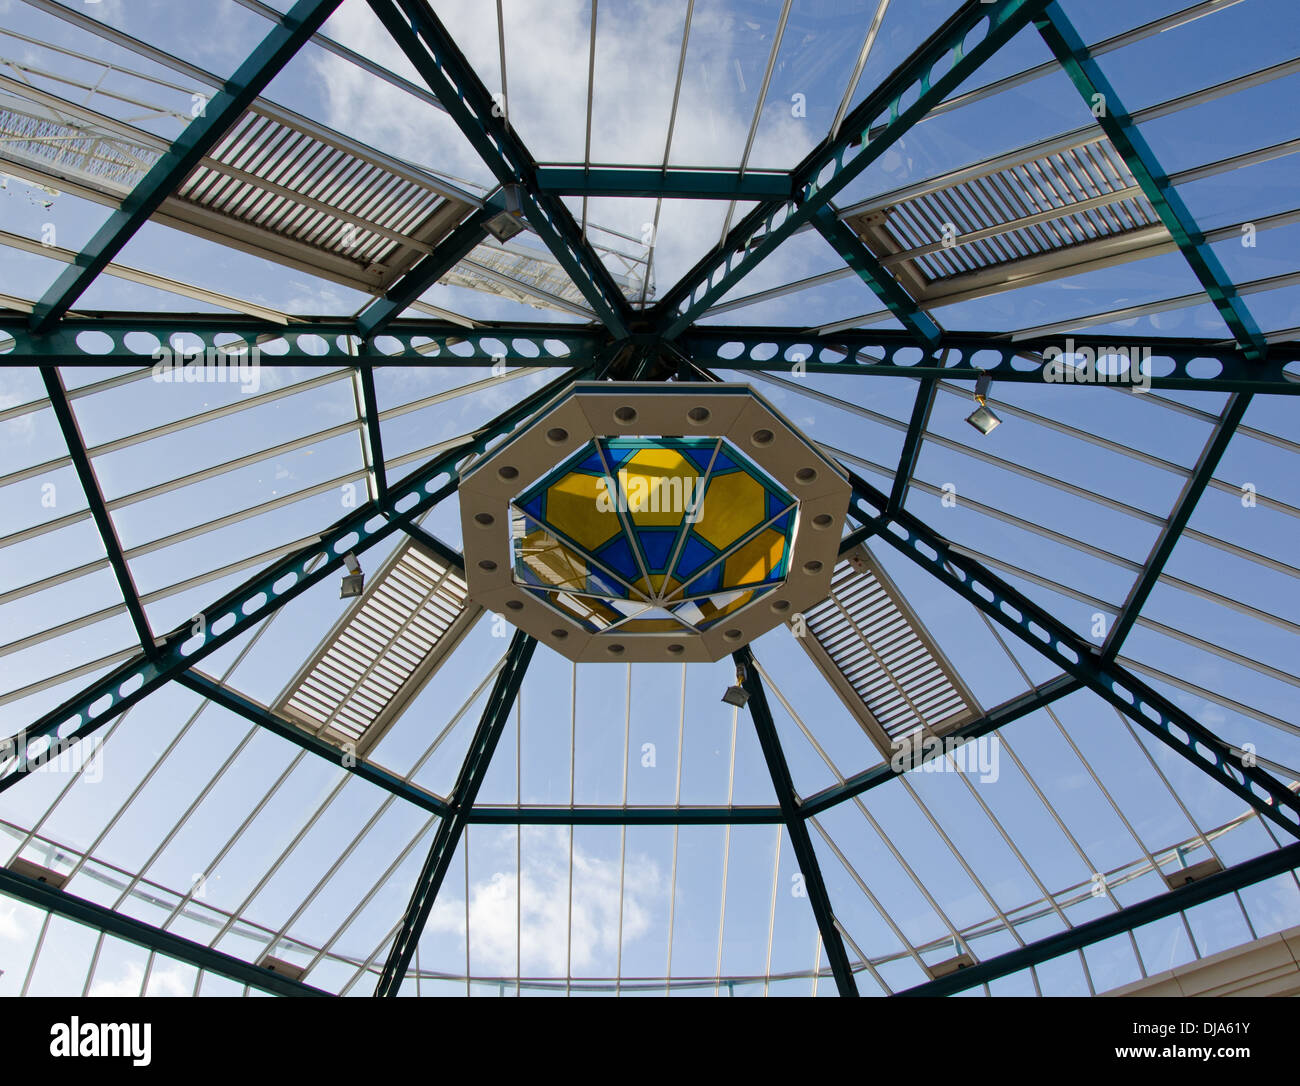 The glass roof ceiling of promenades shopping centre in Bridlington Uk - Stock Image